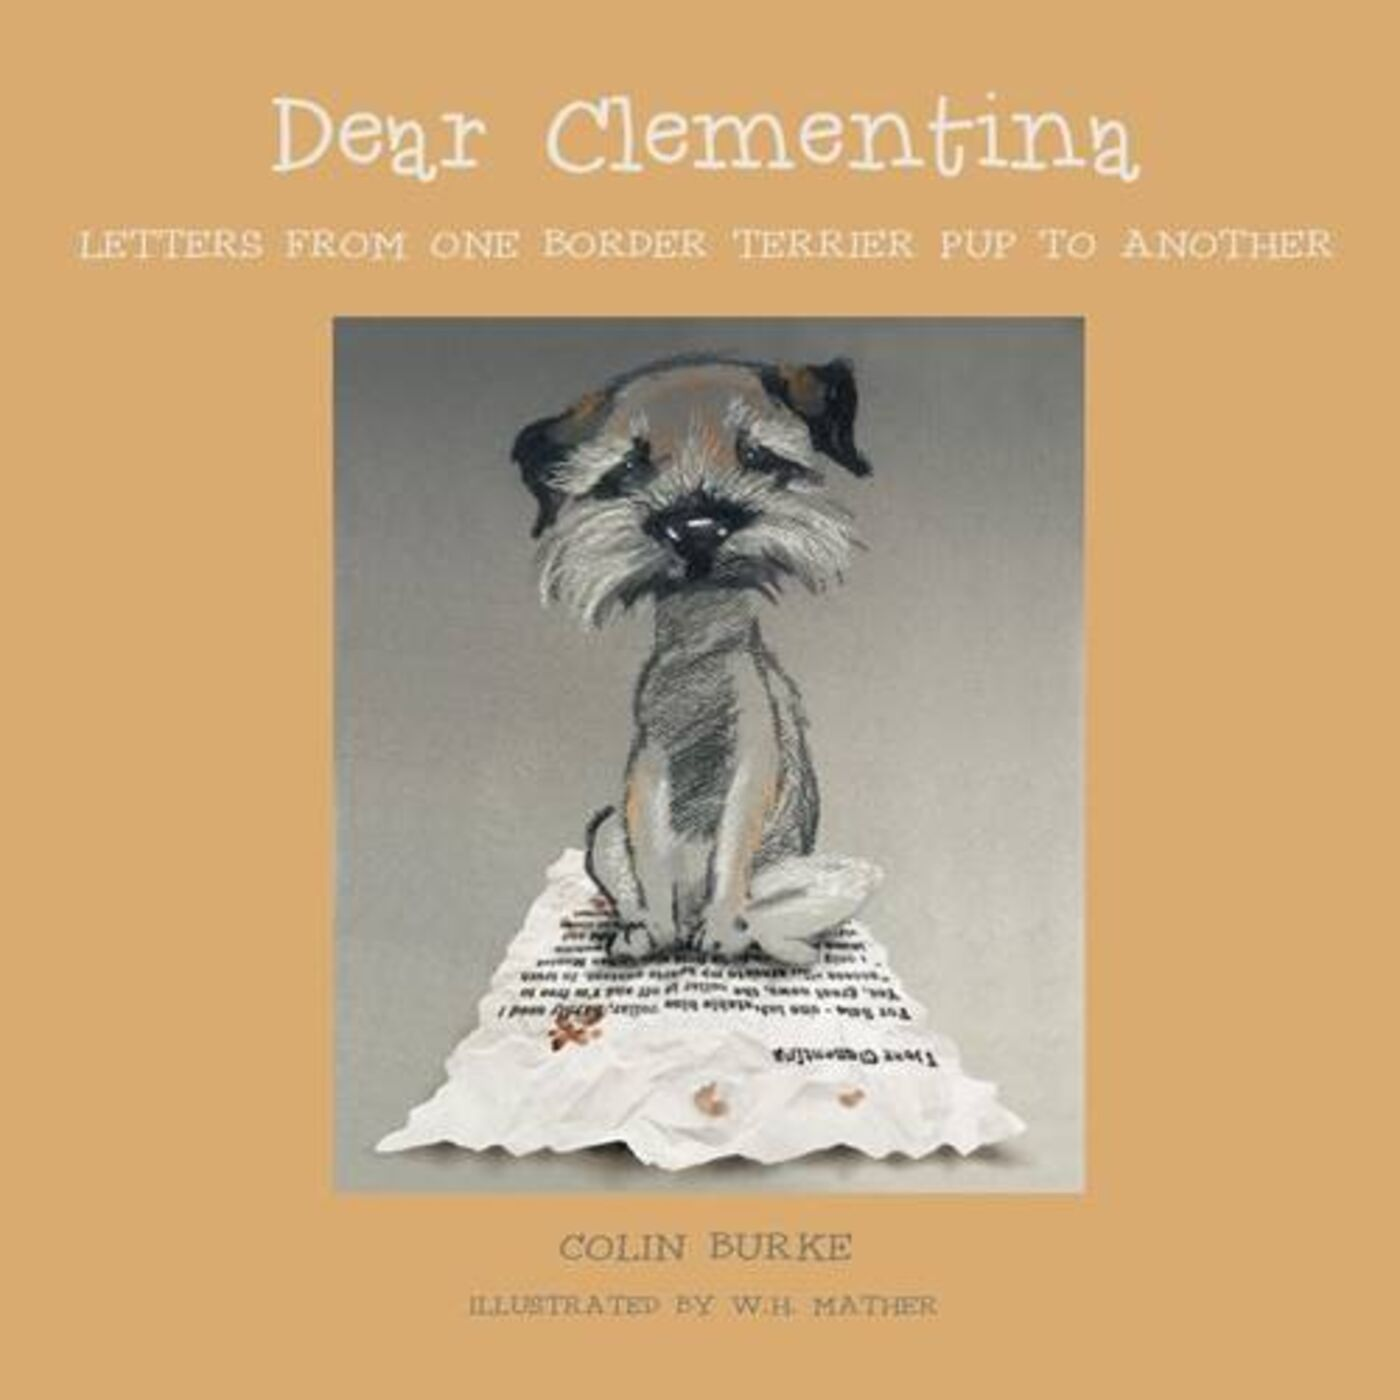 Dear Clementina Chapter 24 - Suzie Catches a Squirrel